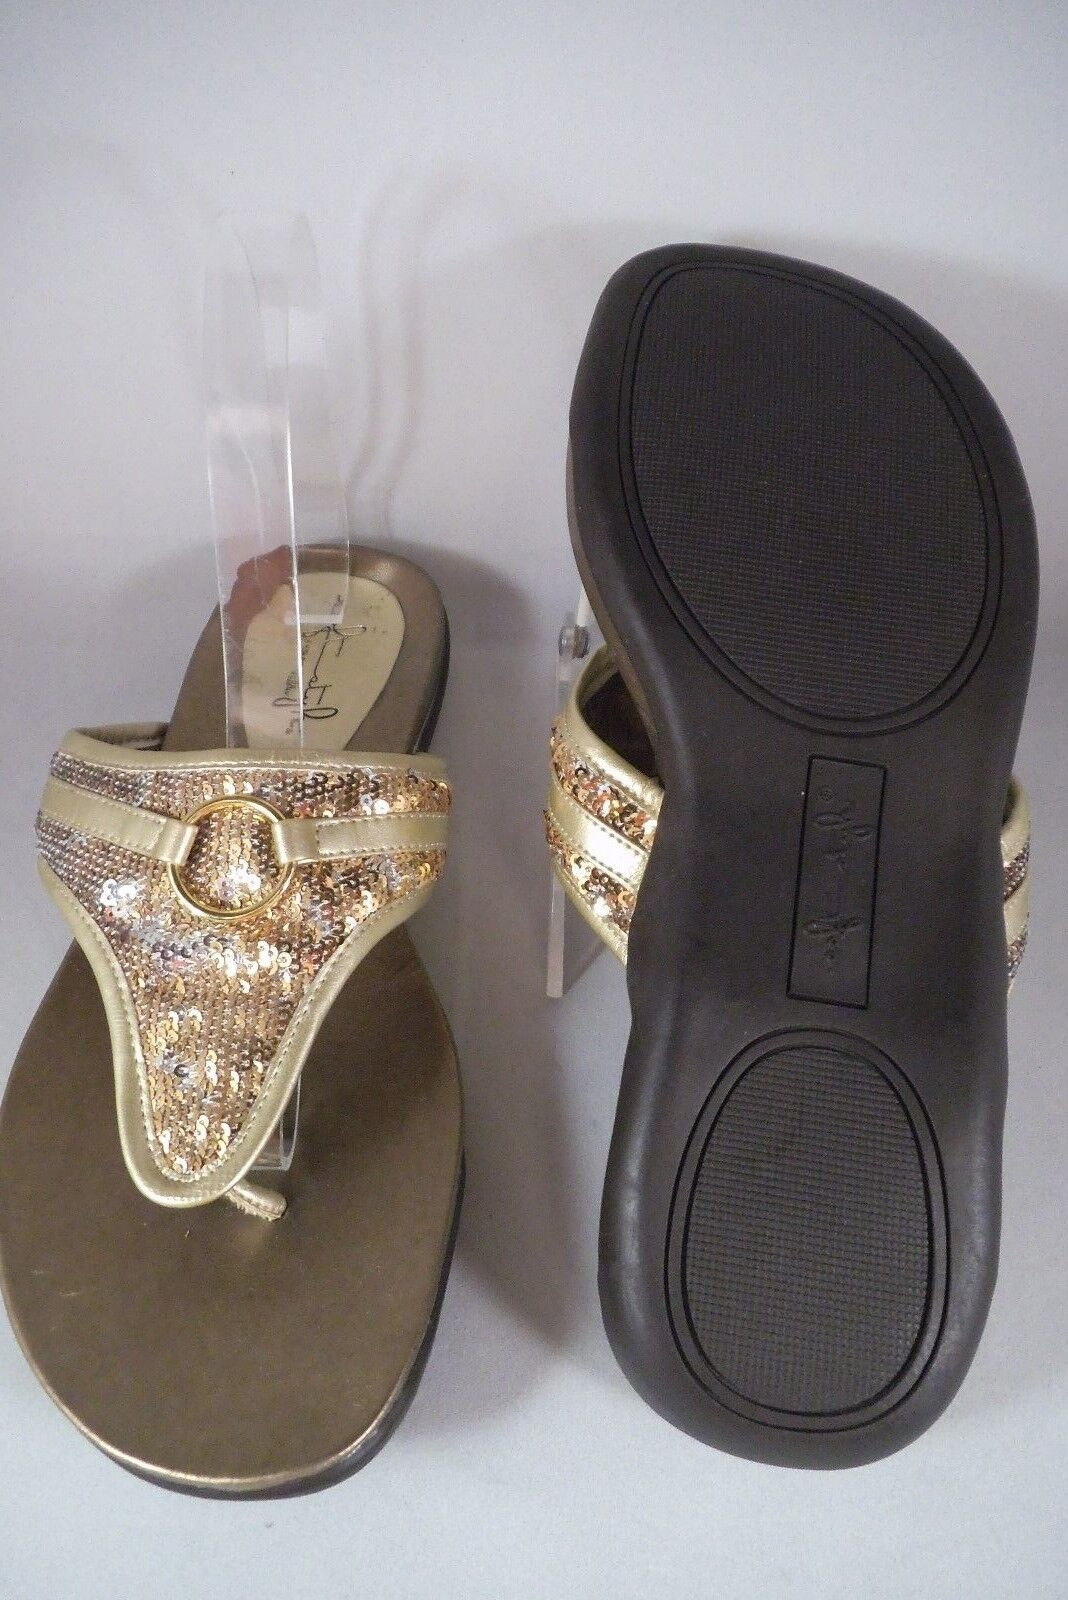 NEW SOFT STYLE HUSH HUSH HUSH PUPPIES GOLD SEQUIN THONG SANDAL 9 MED cd92a0